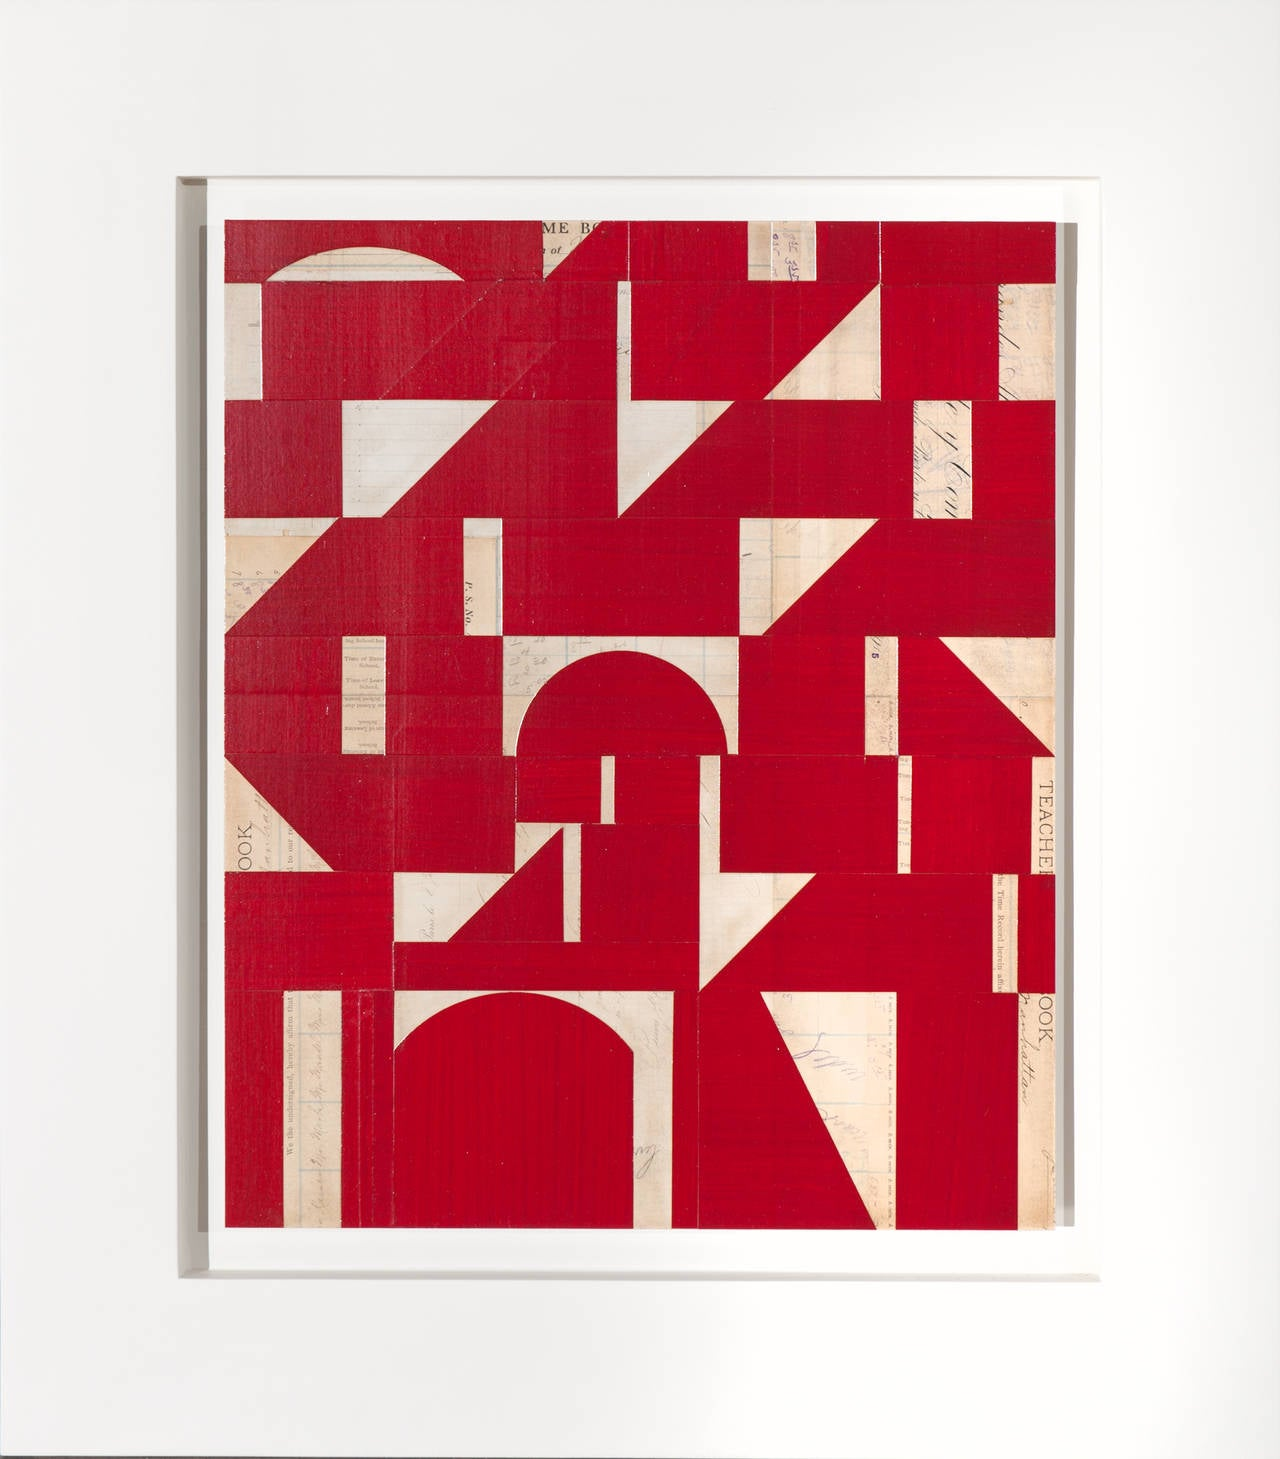 Invisible Cities XXII (red)